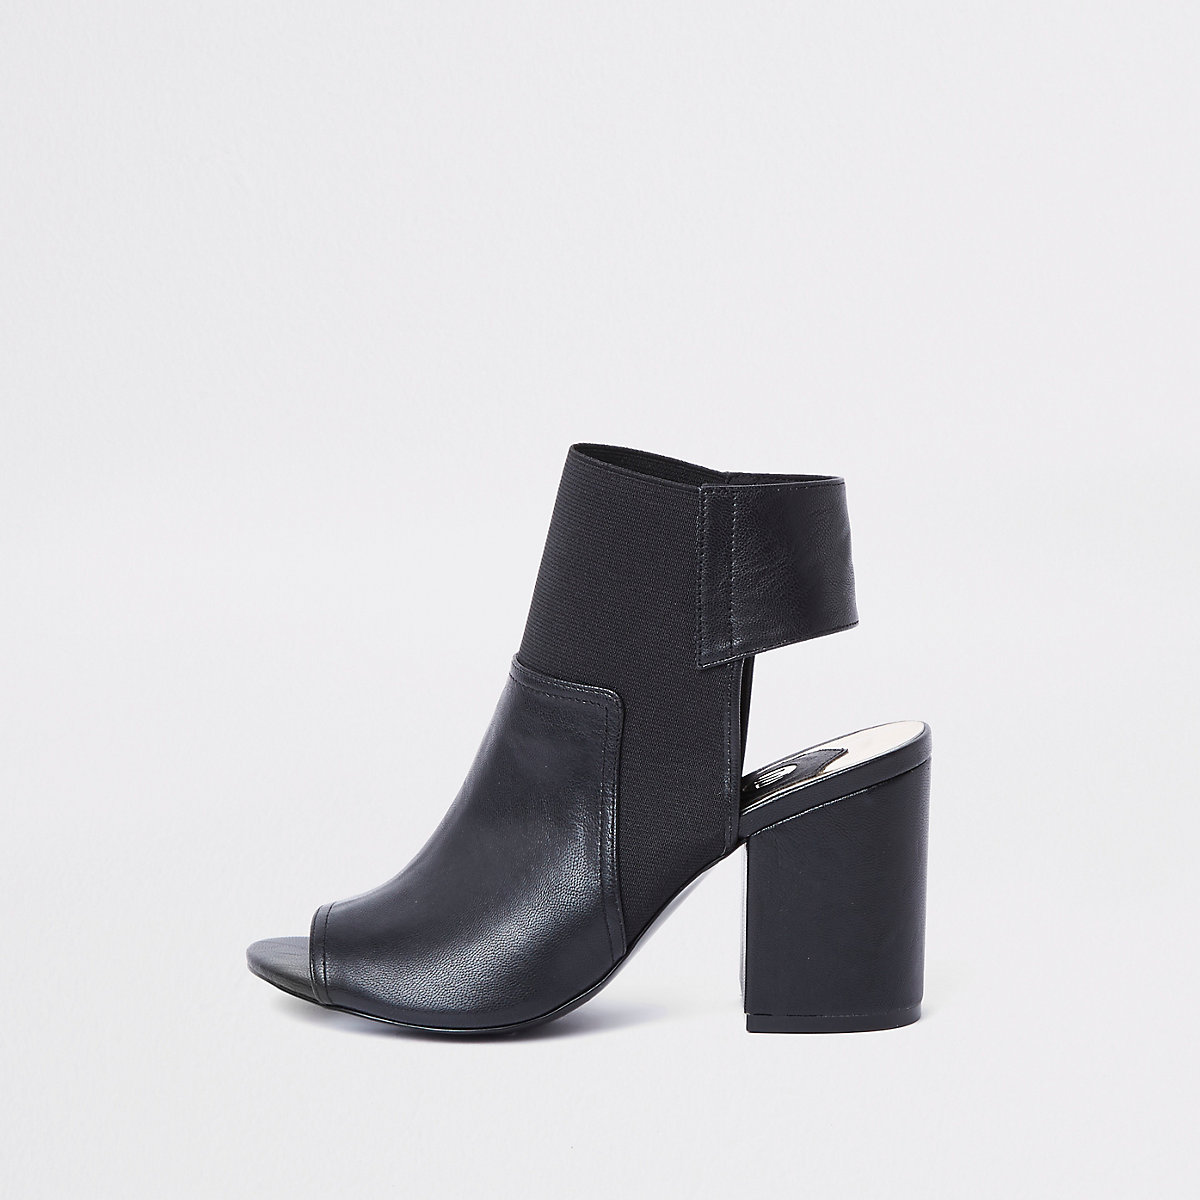 Black faux leather block heel shoe boots